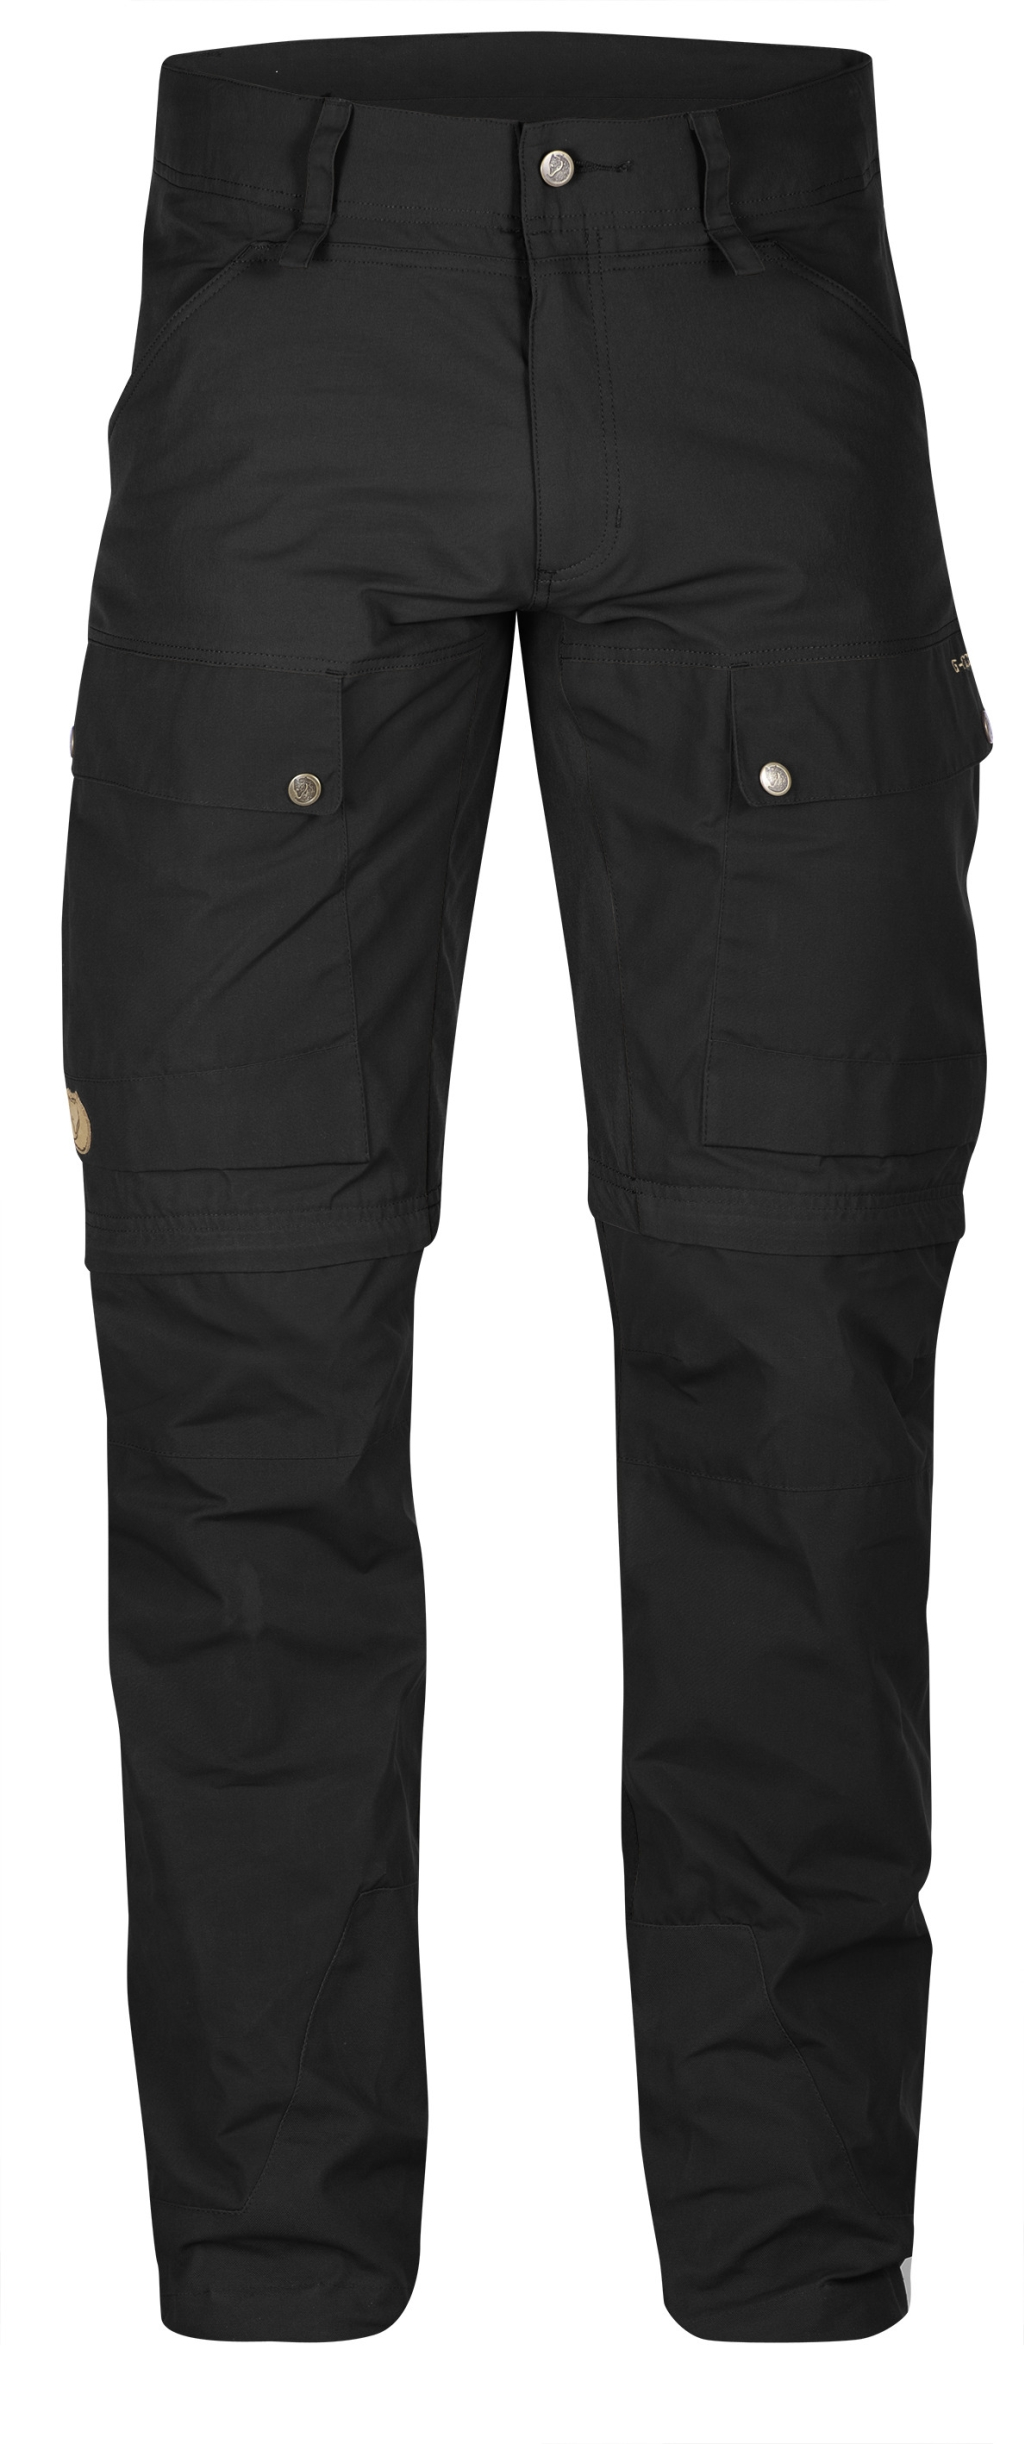 FjallRaven Keb Gaiter Trousers Long Black-Black-30